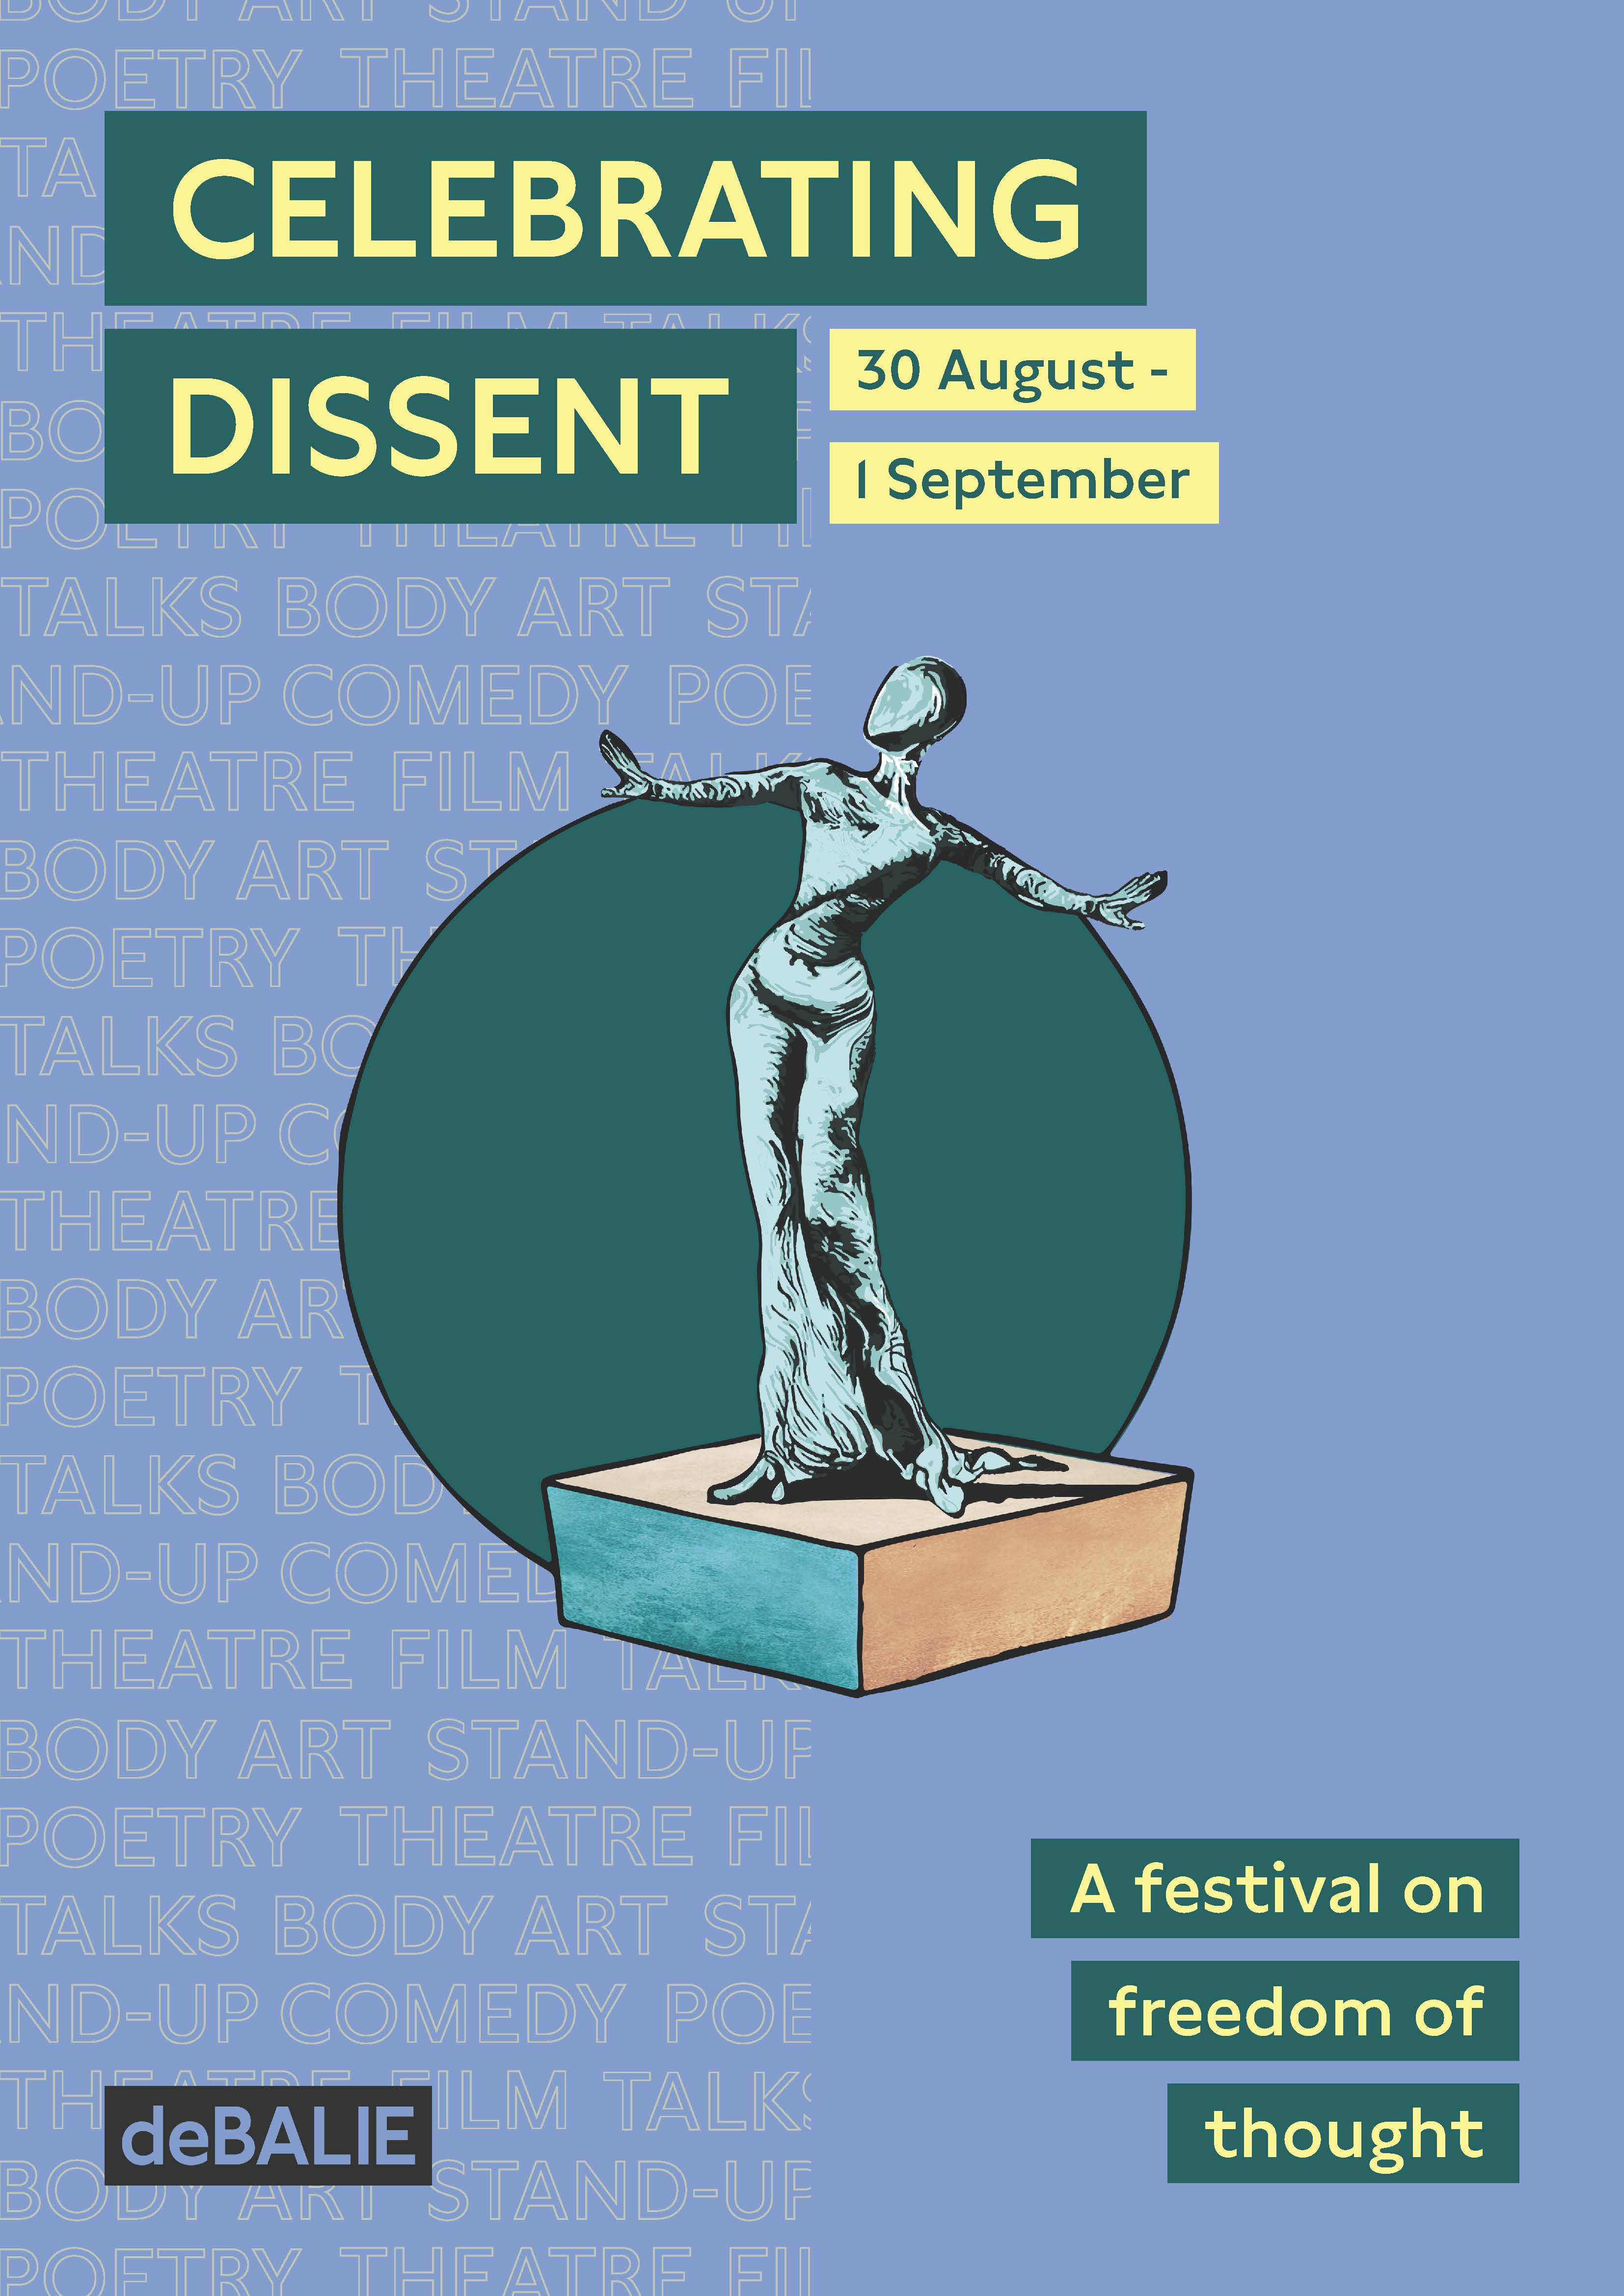 Celebrating Dissent Festival at De Balie in Amsterdam